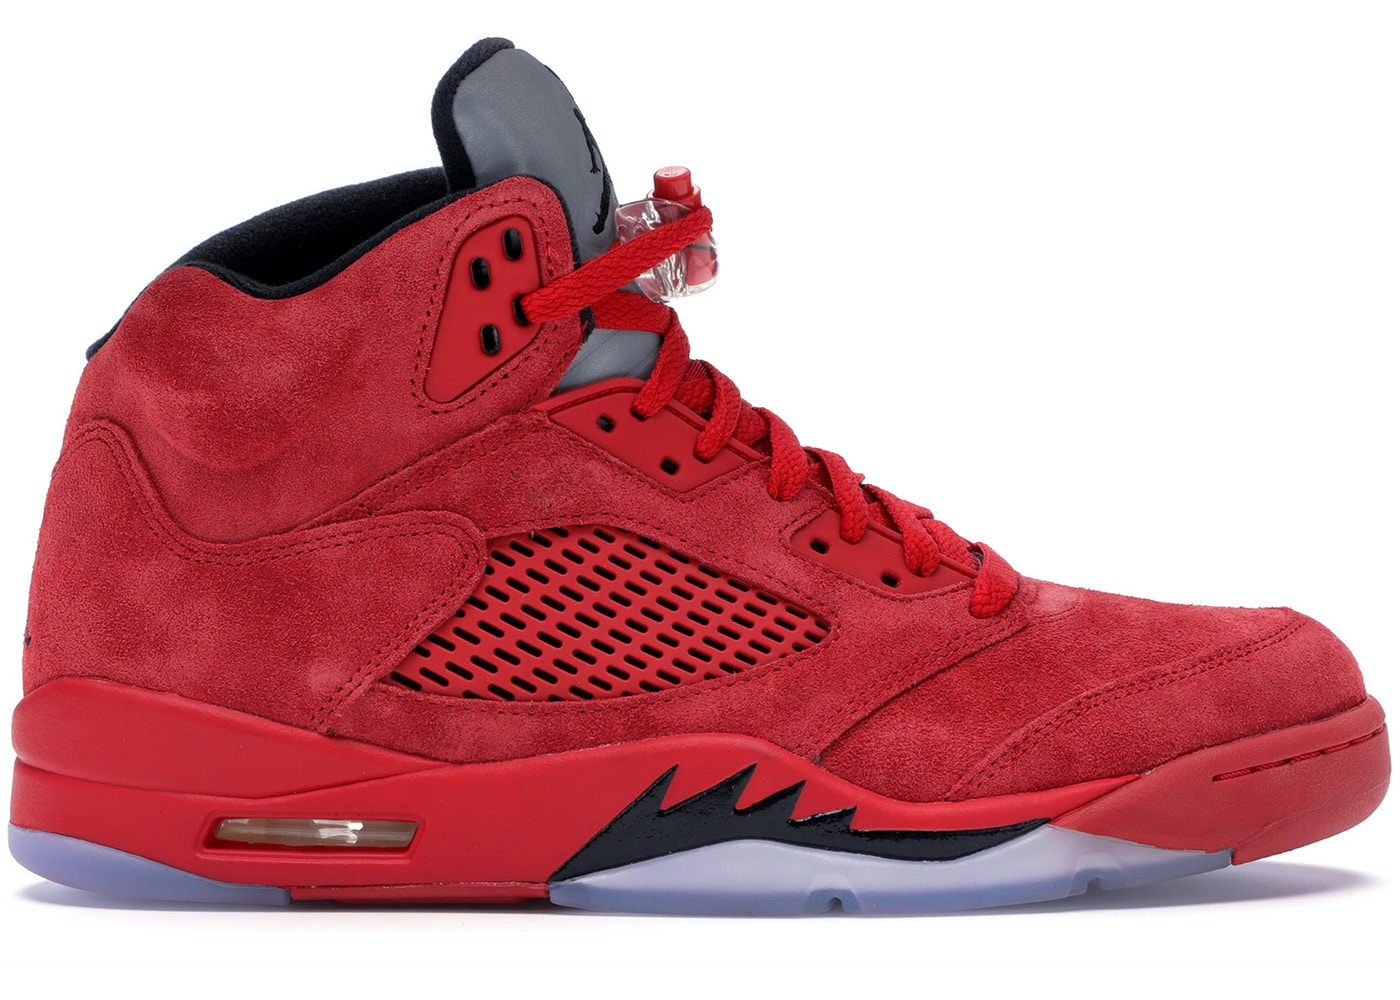 d381abff4c6 Buy Air Jordan 5 Shoes & Deadstock Sneakers